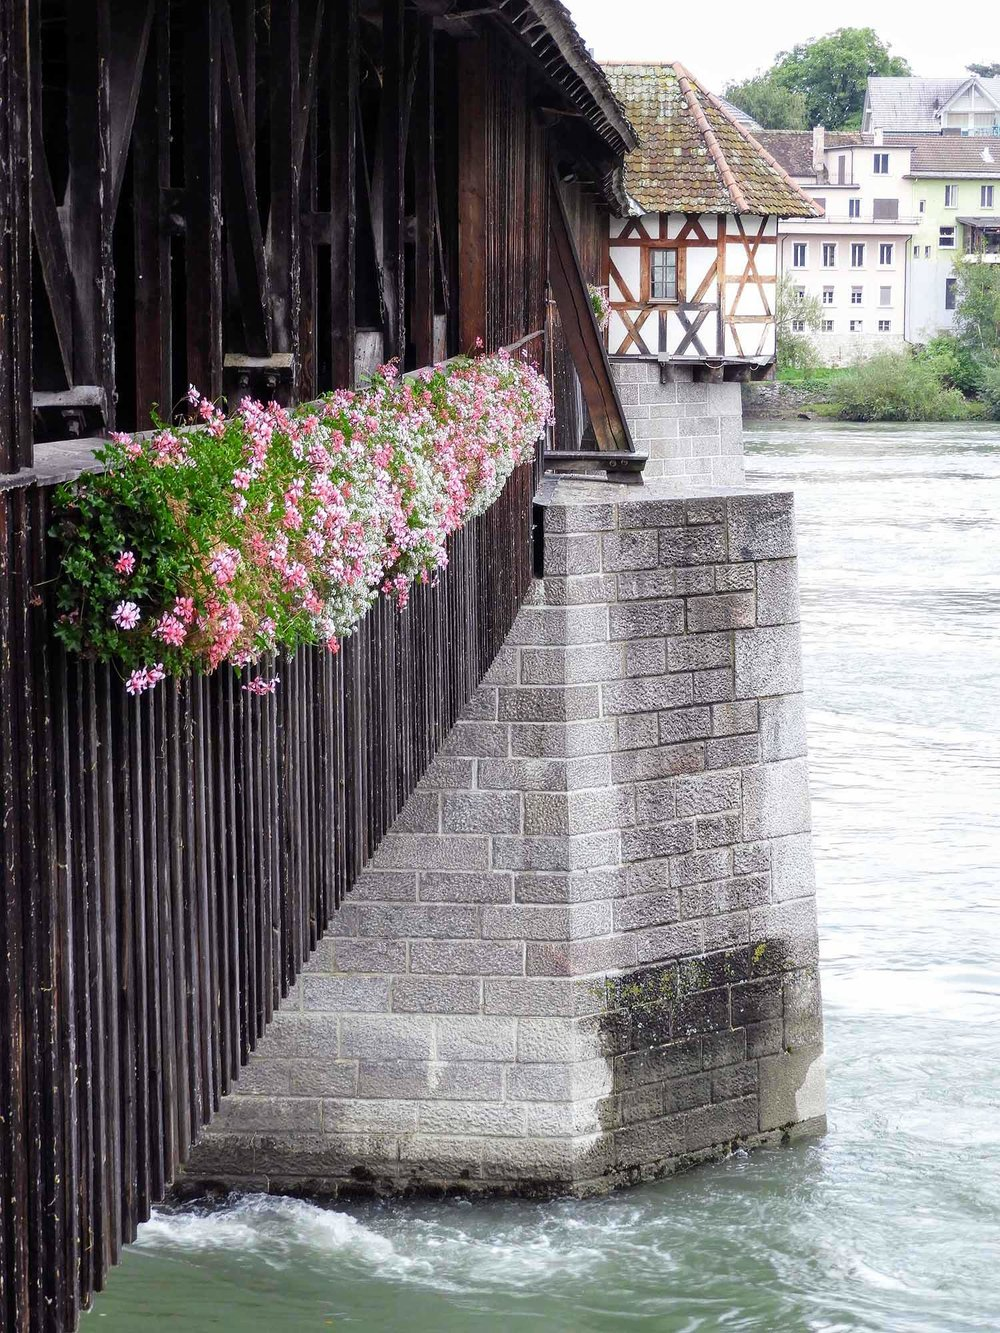 germany-bad-sackingen-rhine-river-historic-bridge-switzerland.jpg